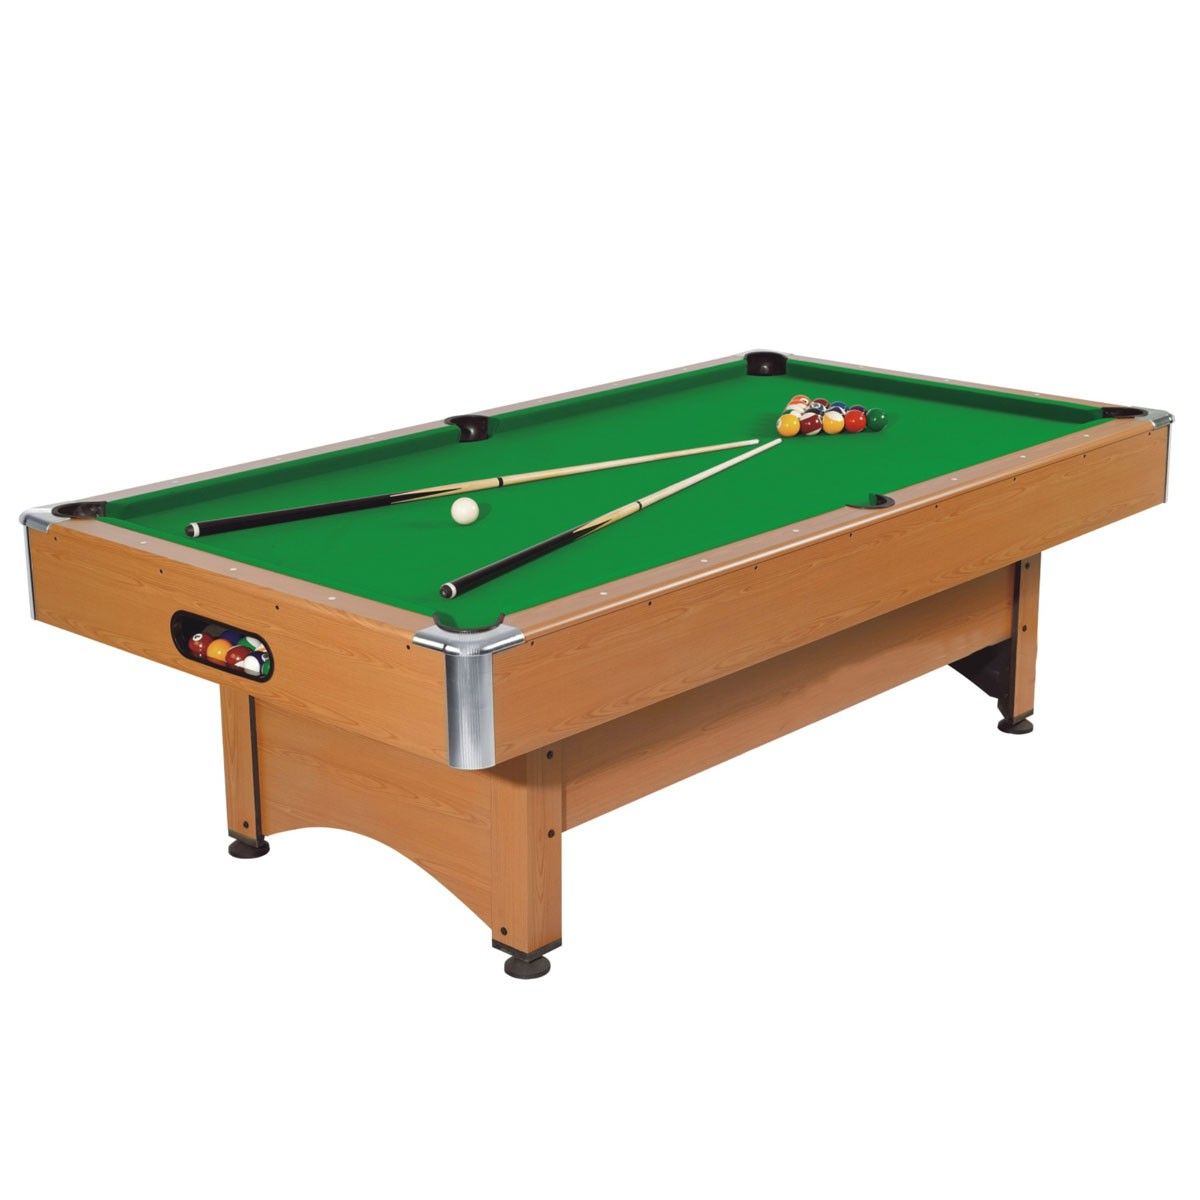 8 foot pool table with ball return system and accessories zlb p03 decoraport canada - Billiard table accessories ...